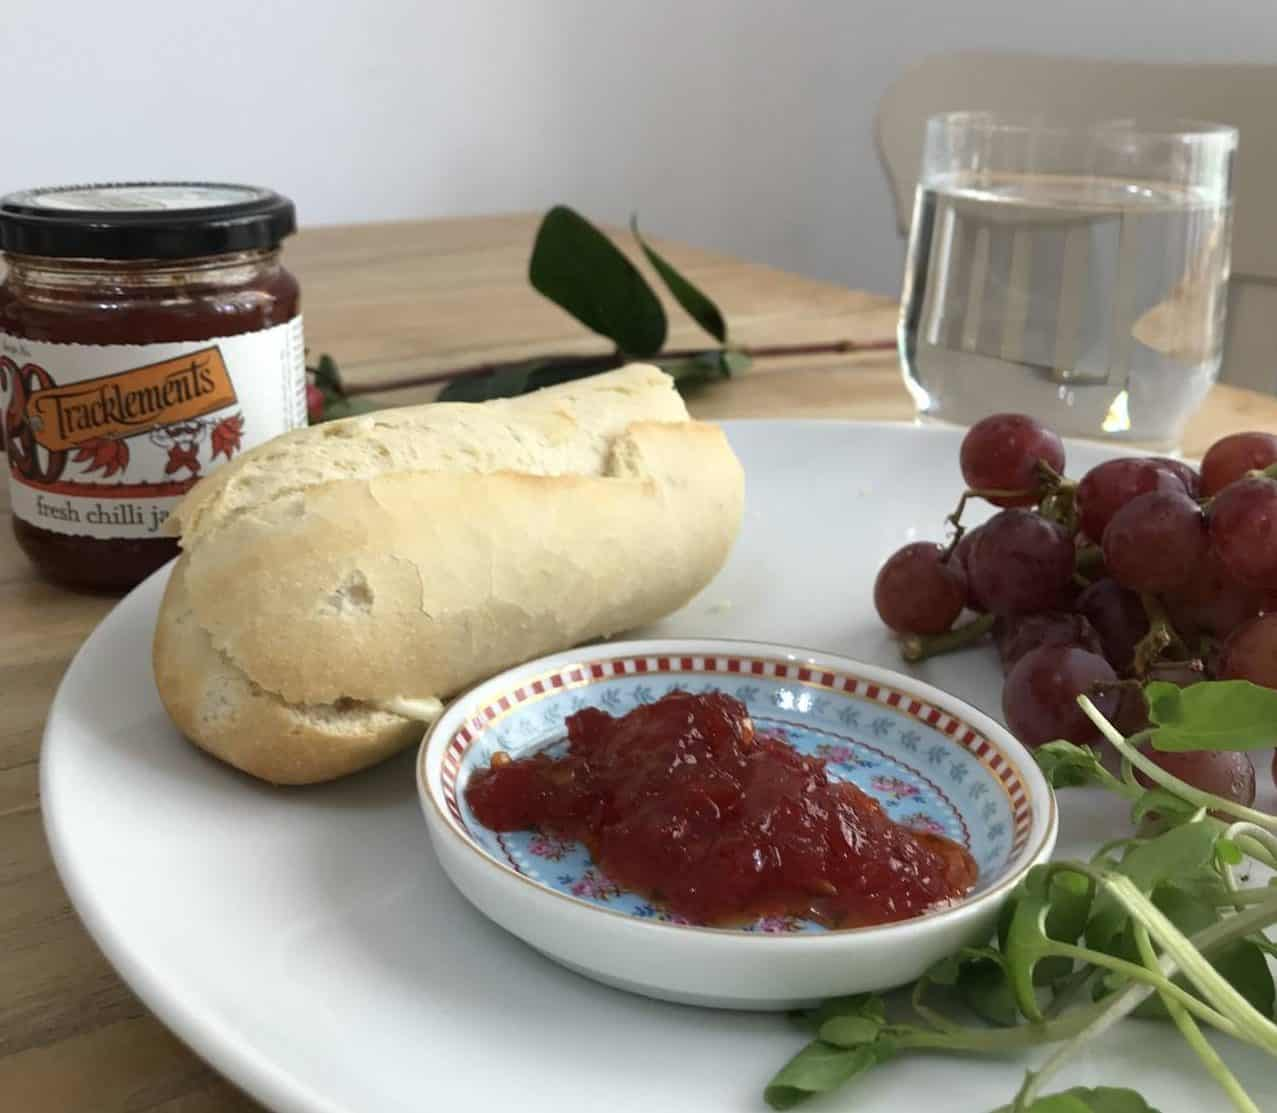 Scrumptious Simple Lunches with Tracklements